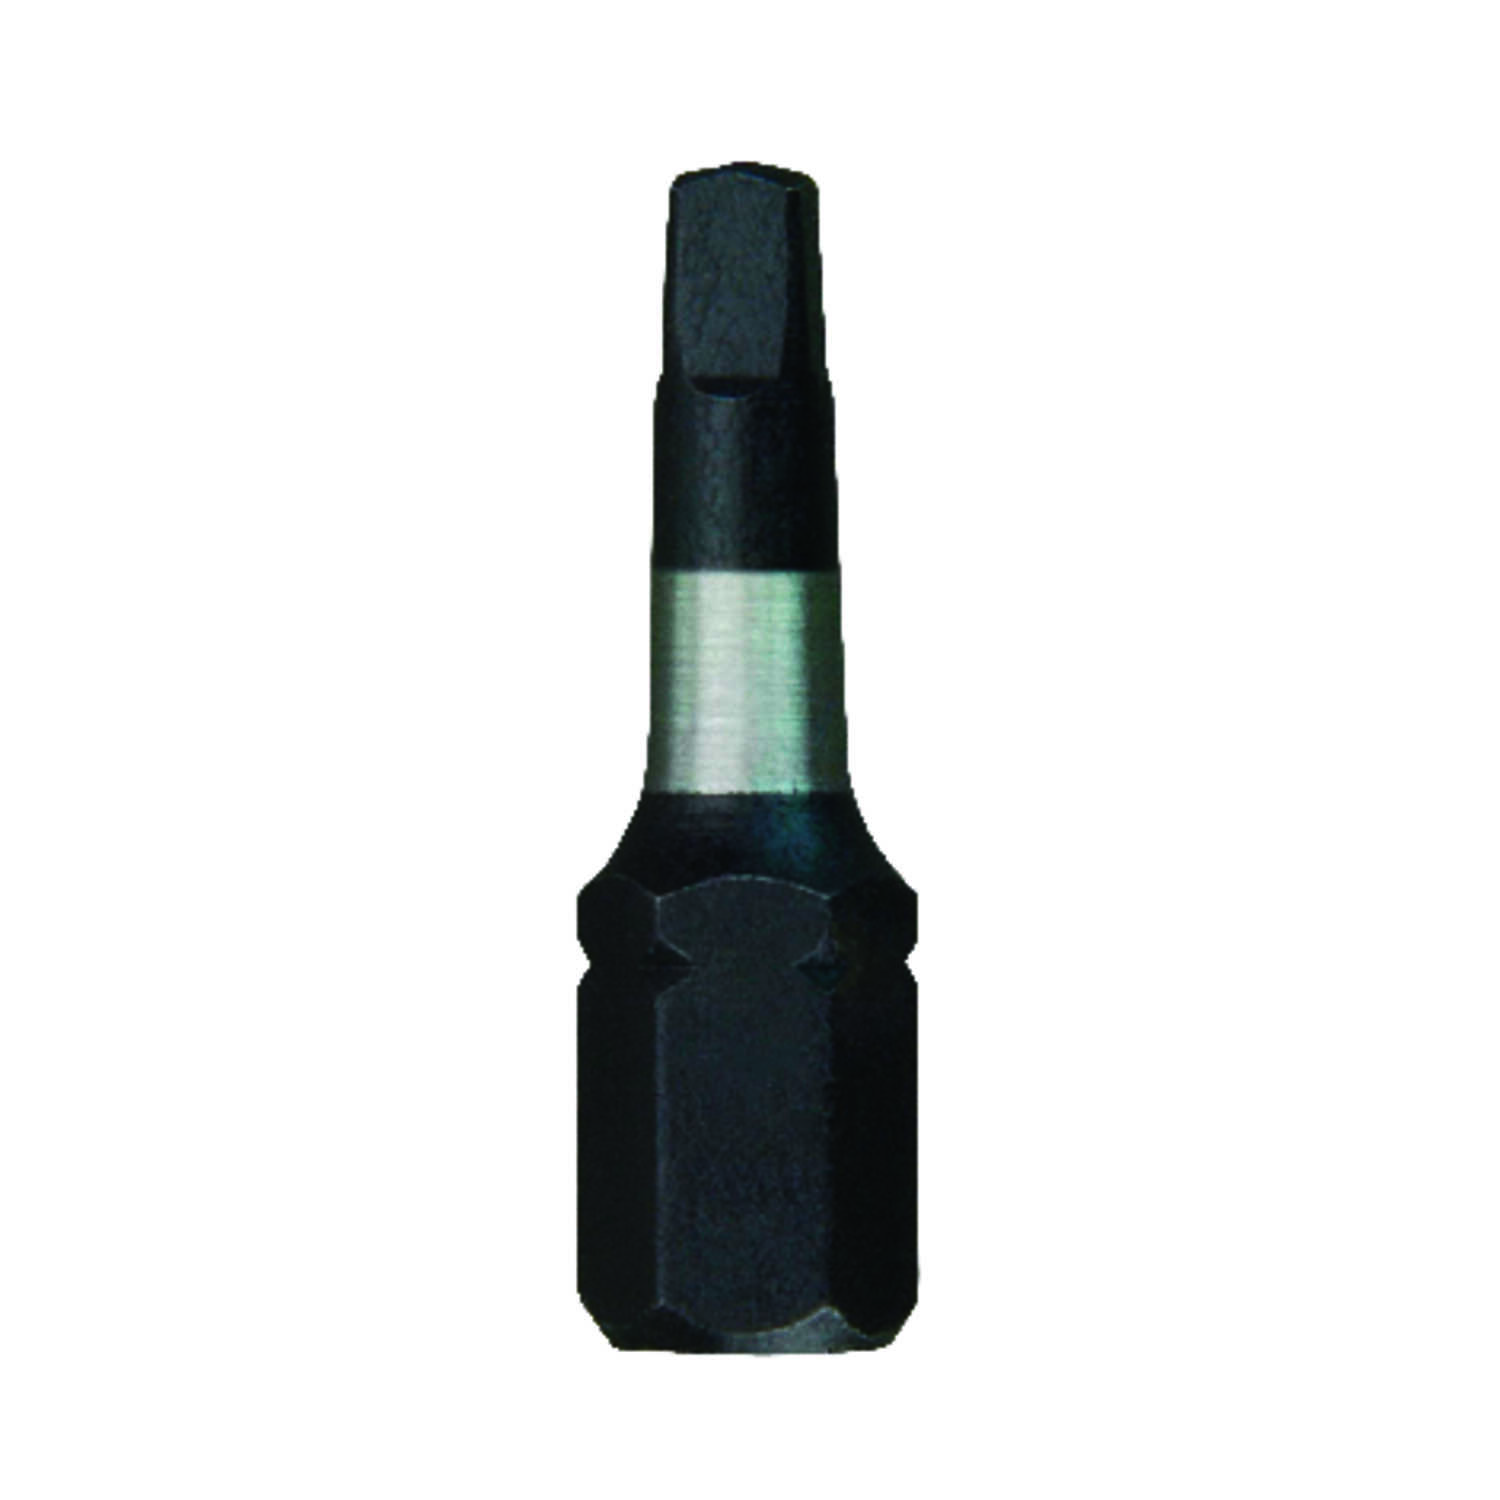 Milwaukee  SHOCKWAVE  Square  #1   x 1 in. L Impact Duty  Screwdriver Bit  Steel  1/4 in. Hex Shank